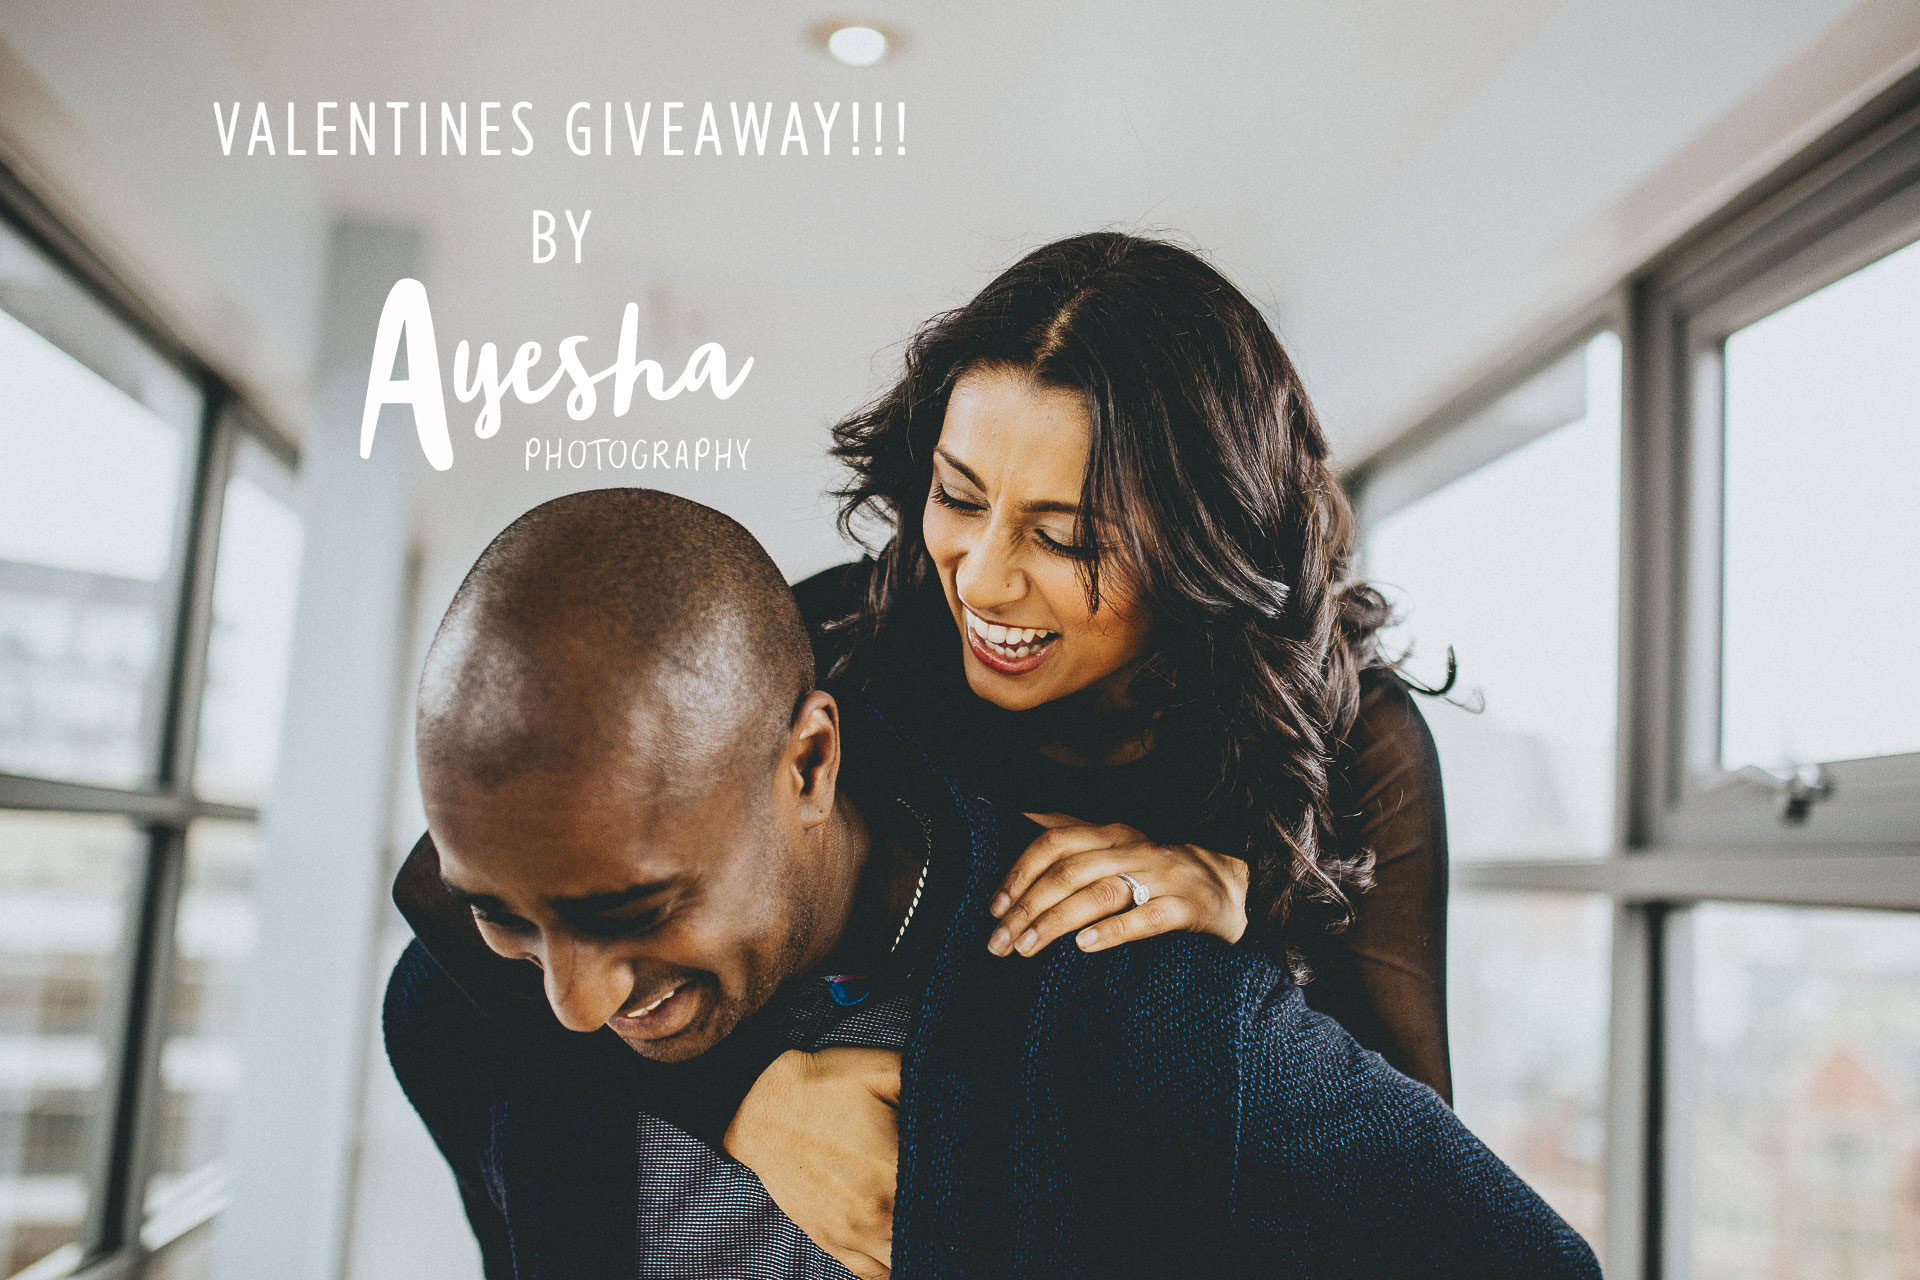 VALENTINES PROMOTION, AYESHA PHOTOGRAPHY, MANCHESTER WEDDING PHOTOGRAPHER, ENGAGEMENT PHOTOGRAPHER, MANCHESTER ENGAGEMENT PHOTOGRAPHER